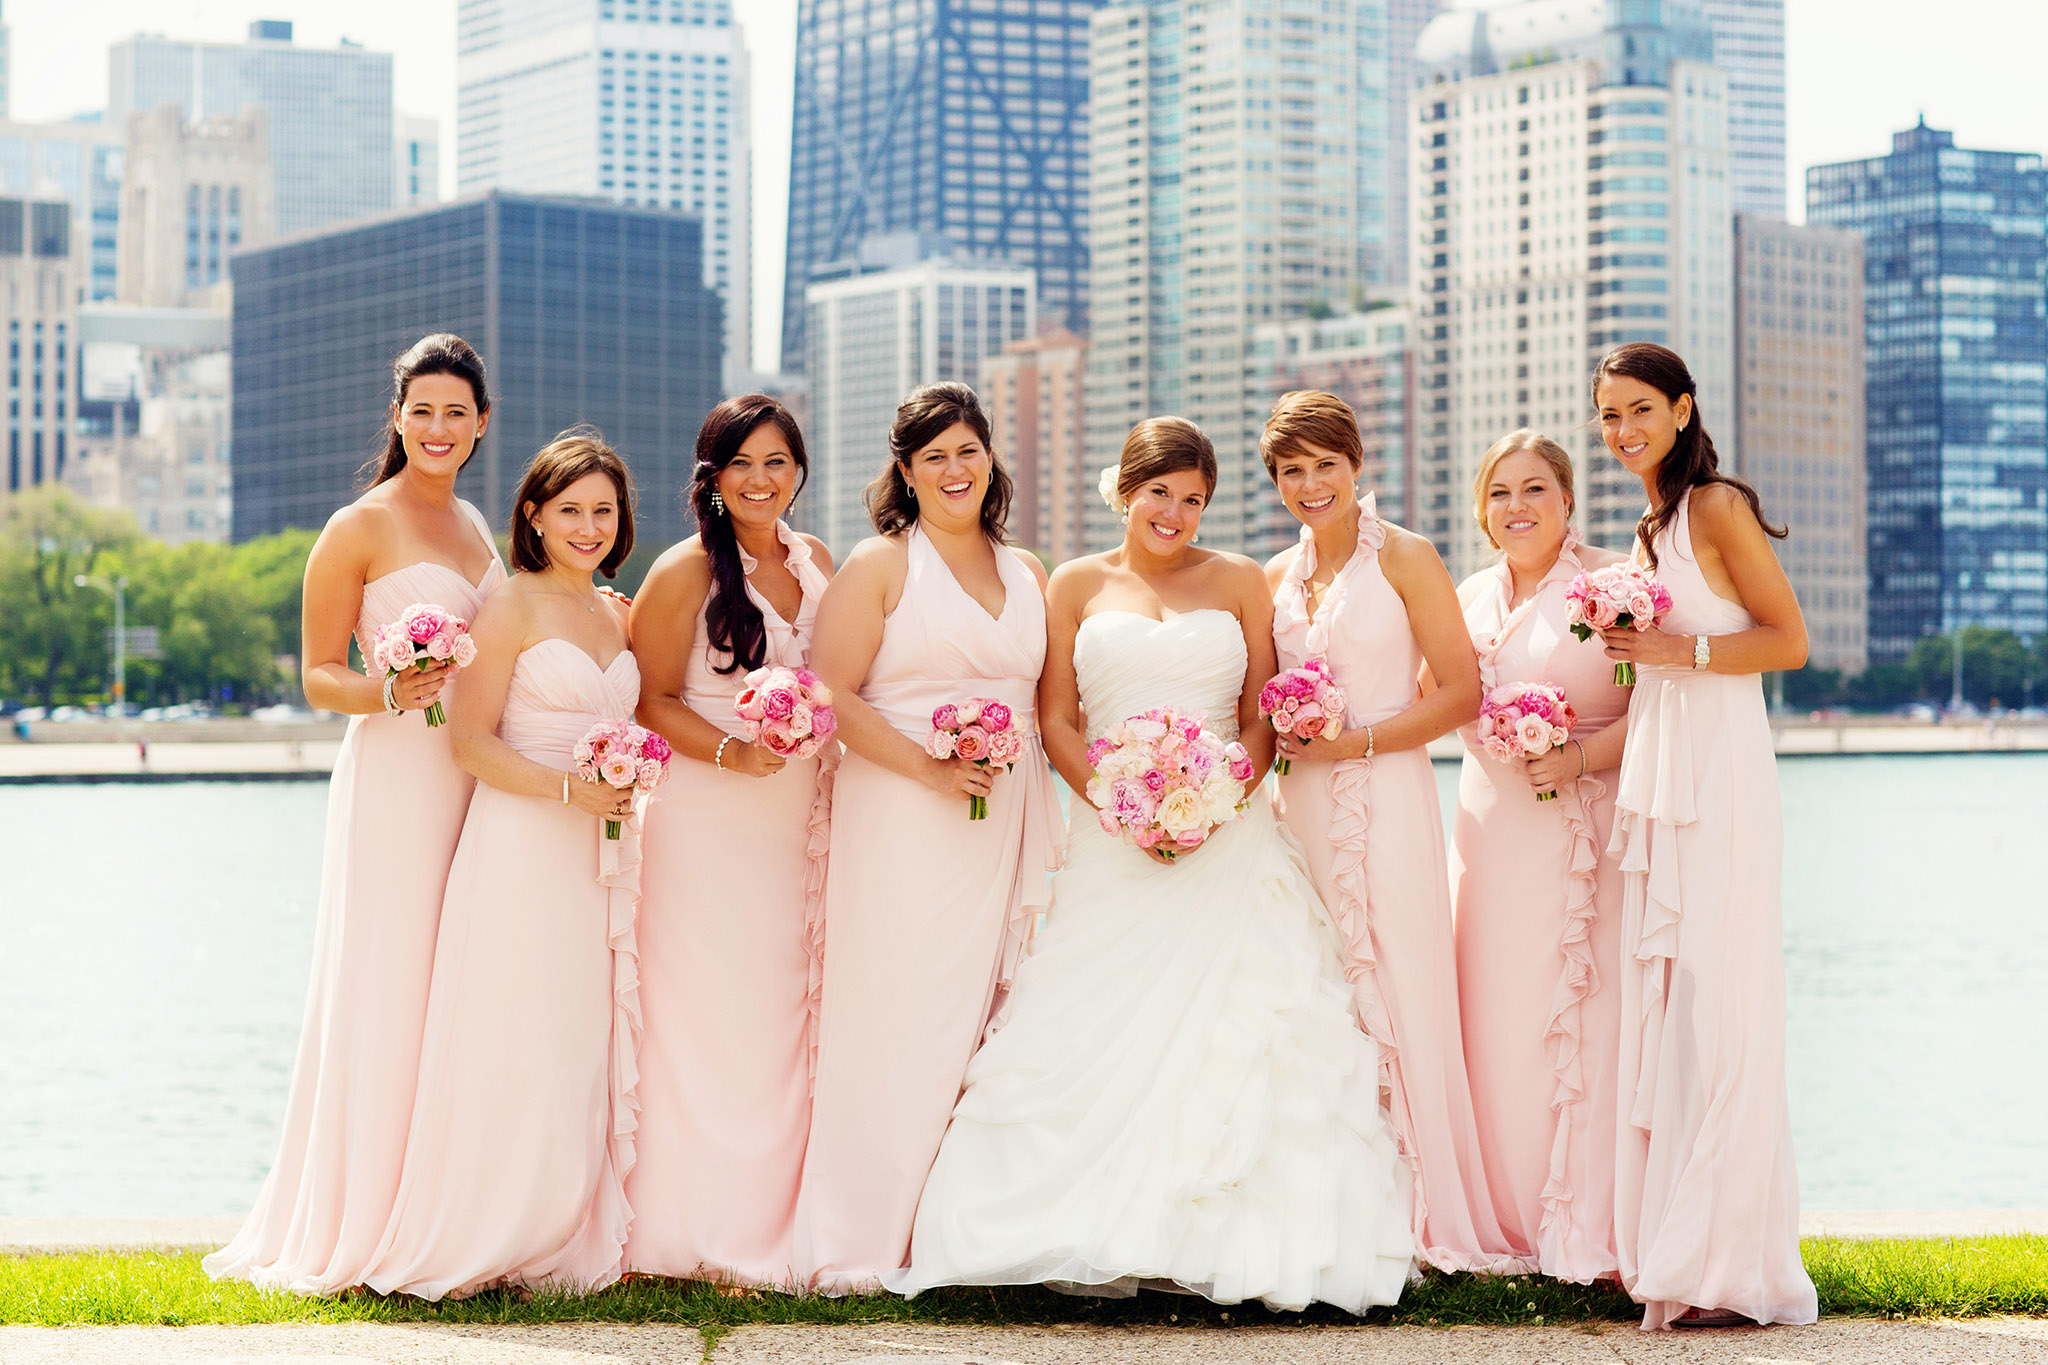 Bridesmaid dresses blush bridesmaid gowns from real weddings chicago wedding strapless and halter blush bridesmaid dresses ombrellifo Images